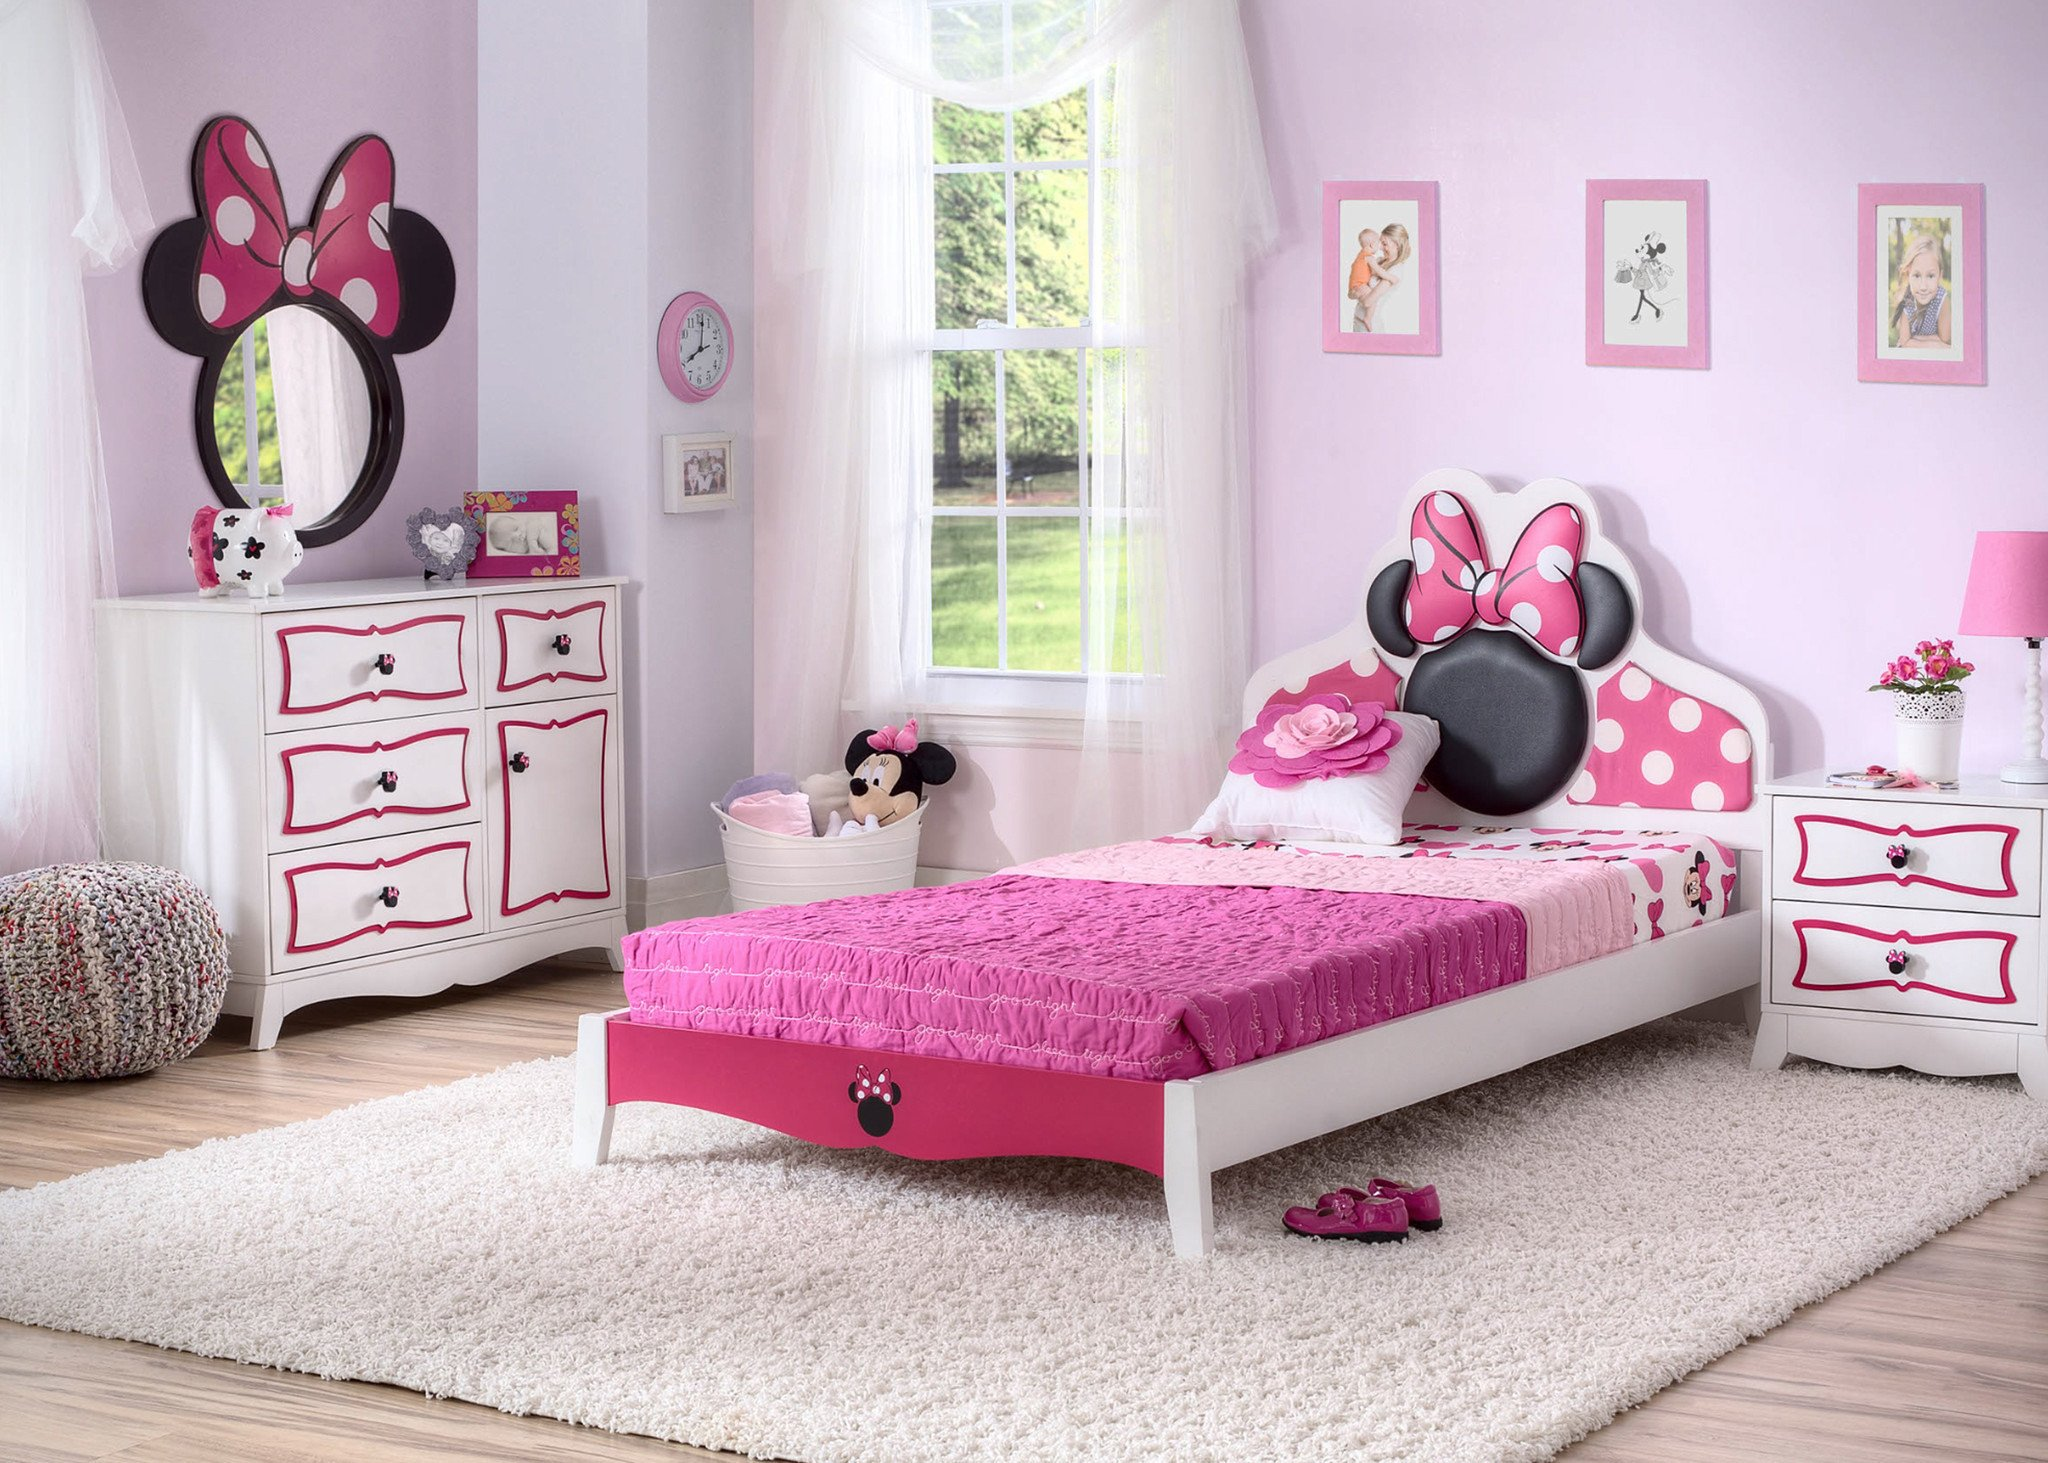 Minnie Mouse Bedroom Set Luxury Take A Look at these Awesome Minnie Mouse Bedroom Items